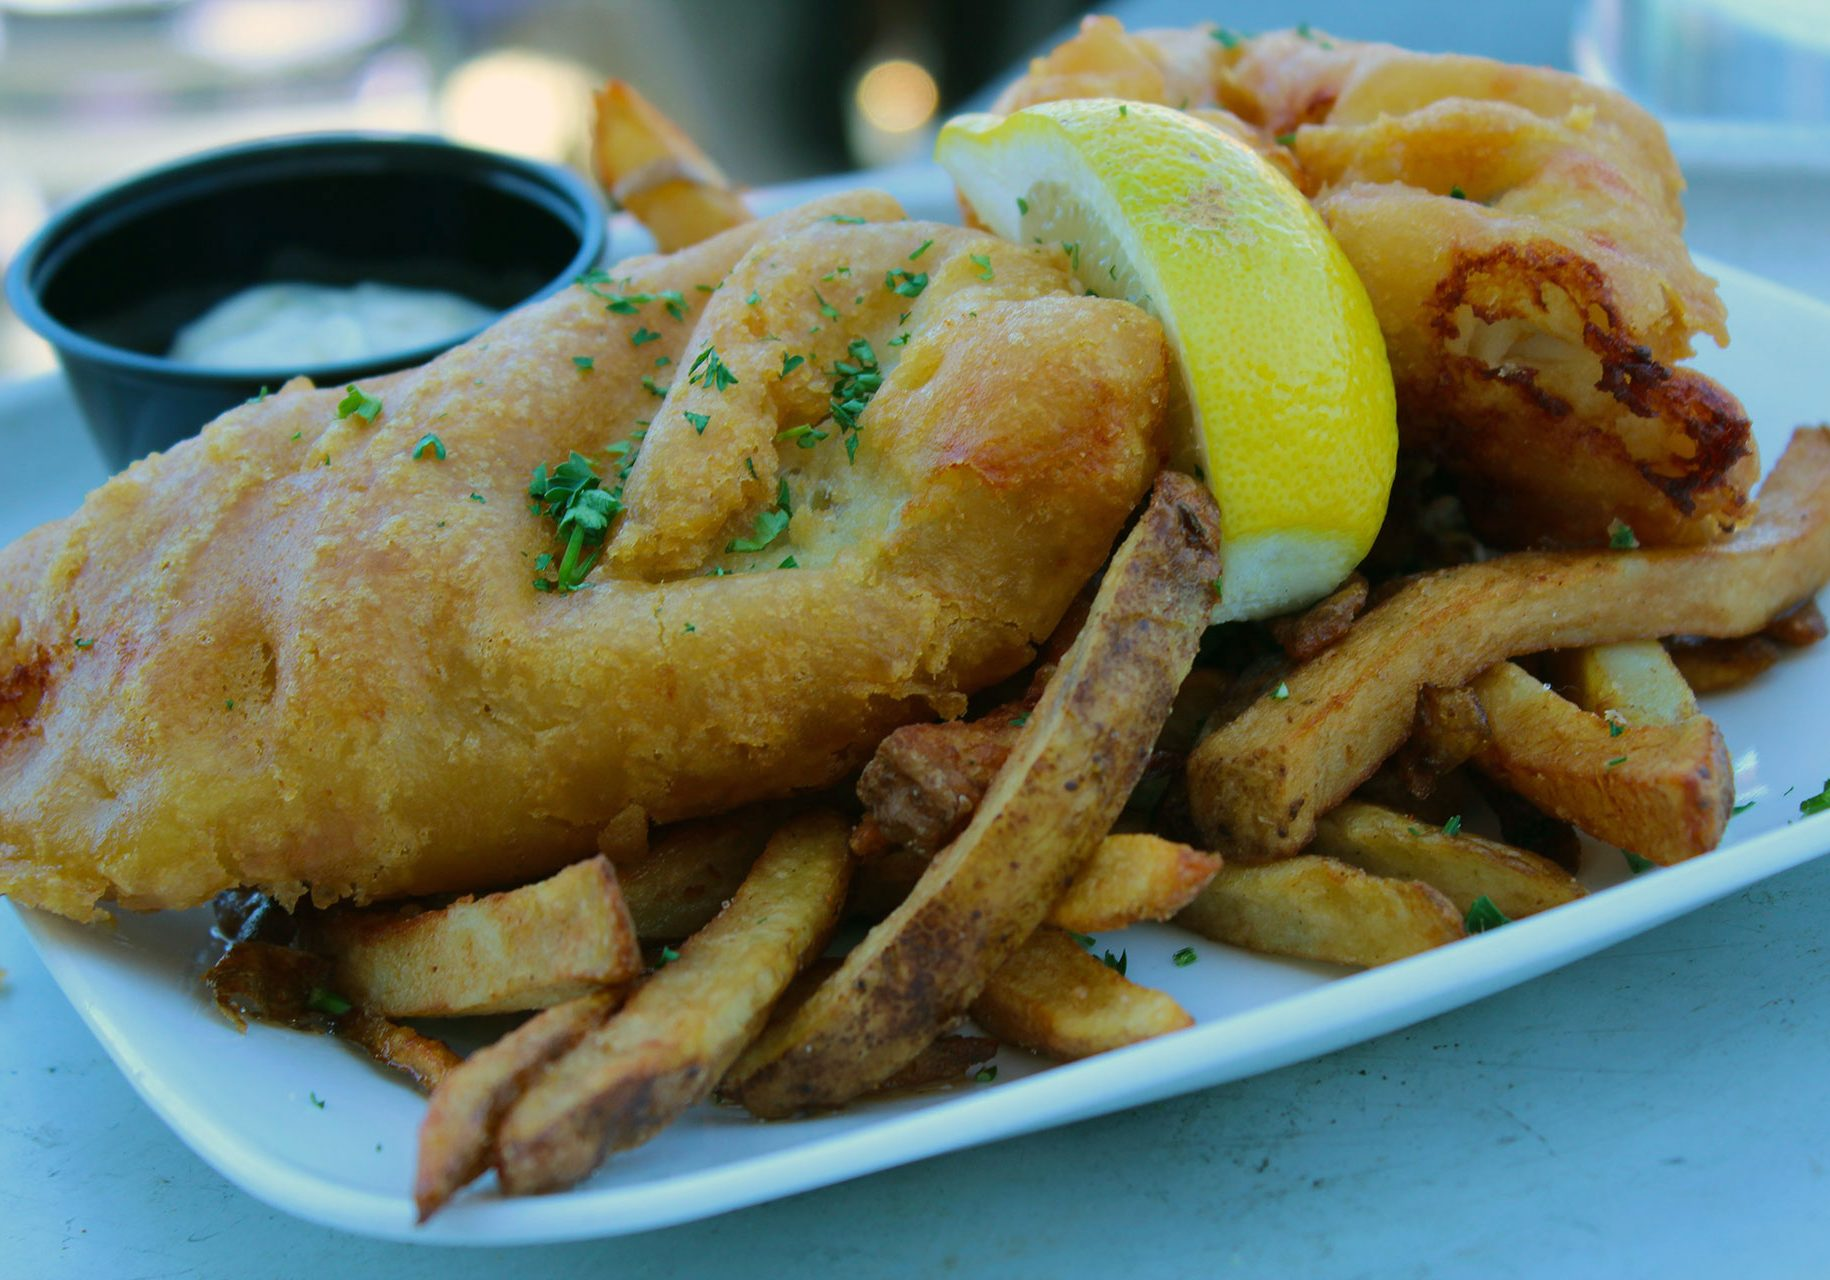 Fish & Chips at O'Reilly's Rooftop Patio